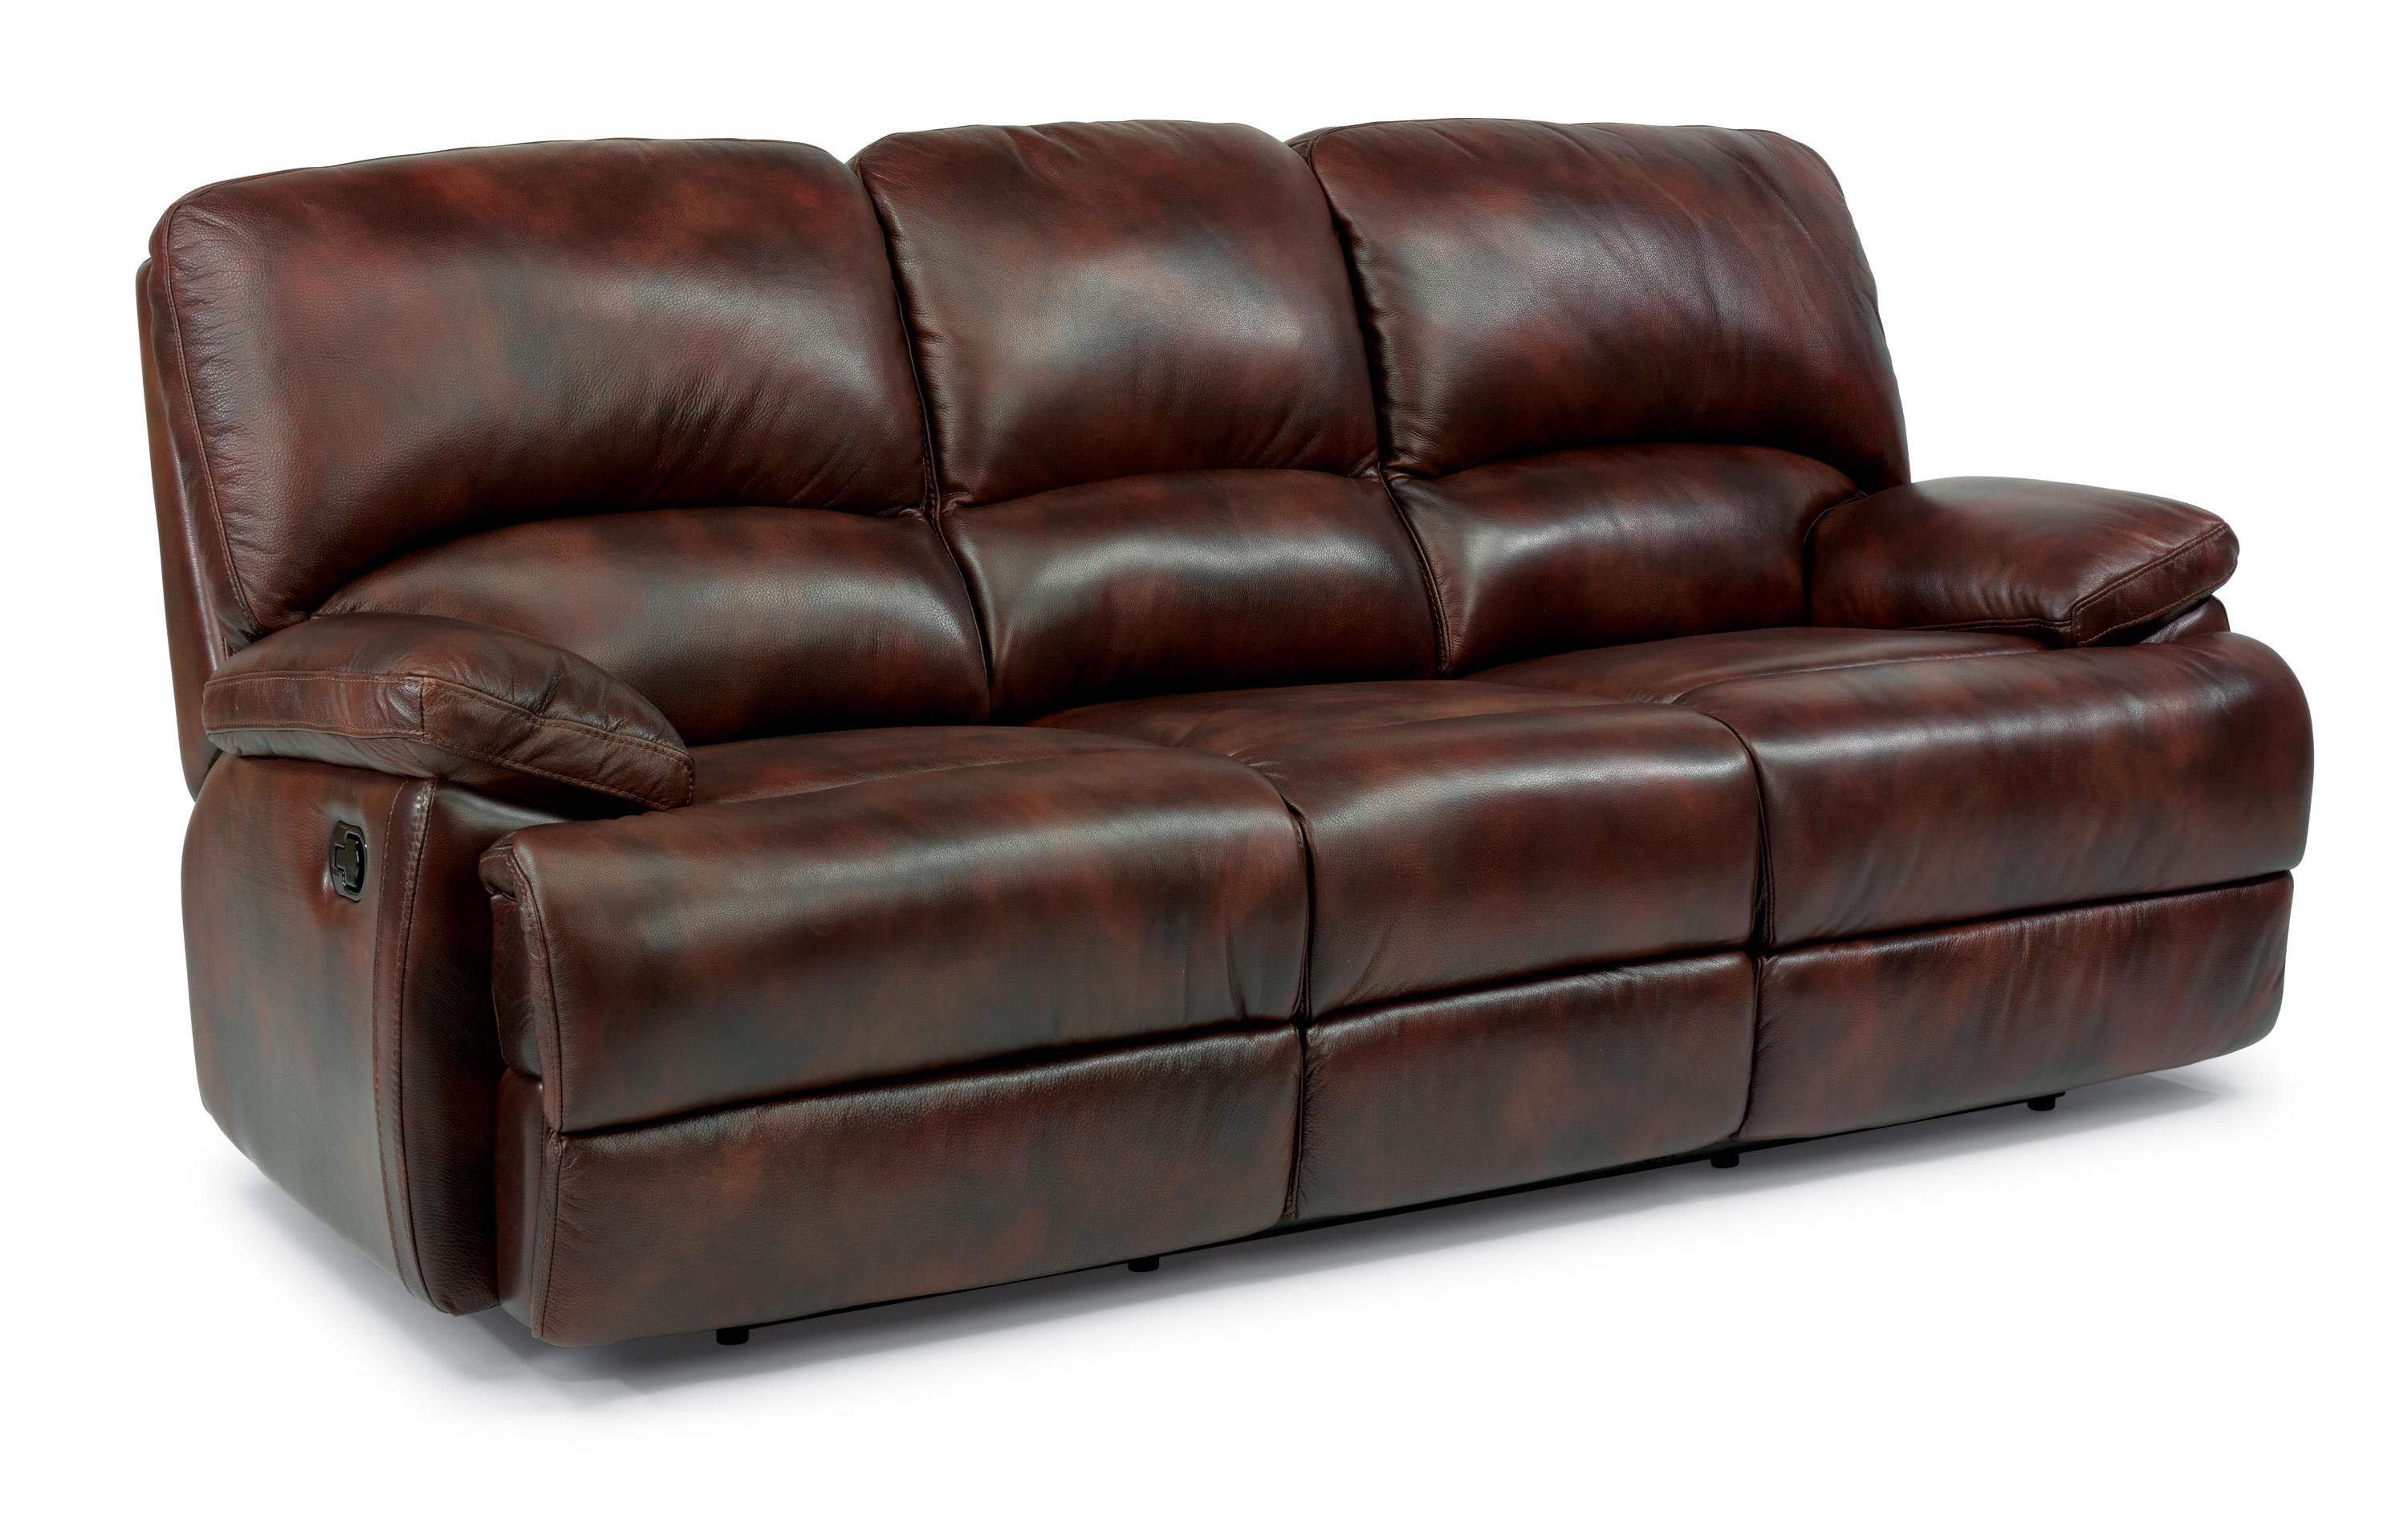 flexsteel recliner sofa black corner bed with storage dylan reclining 100 leather